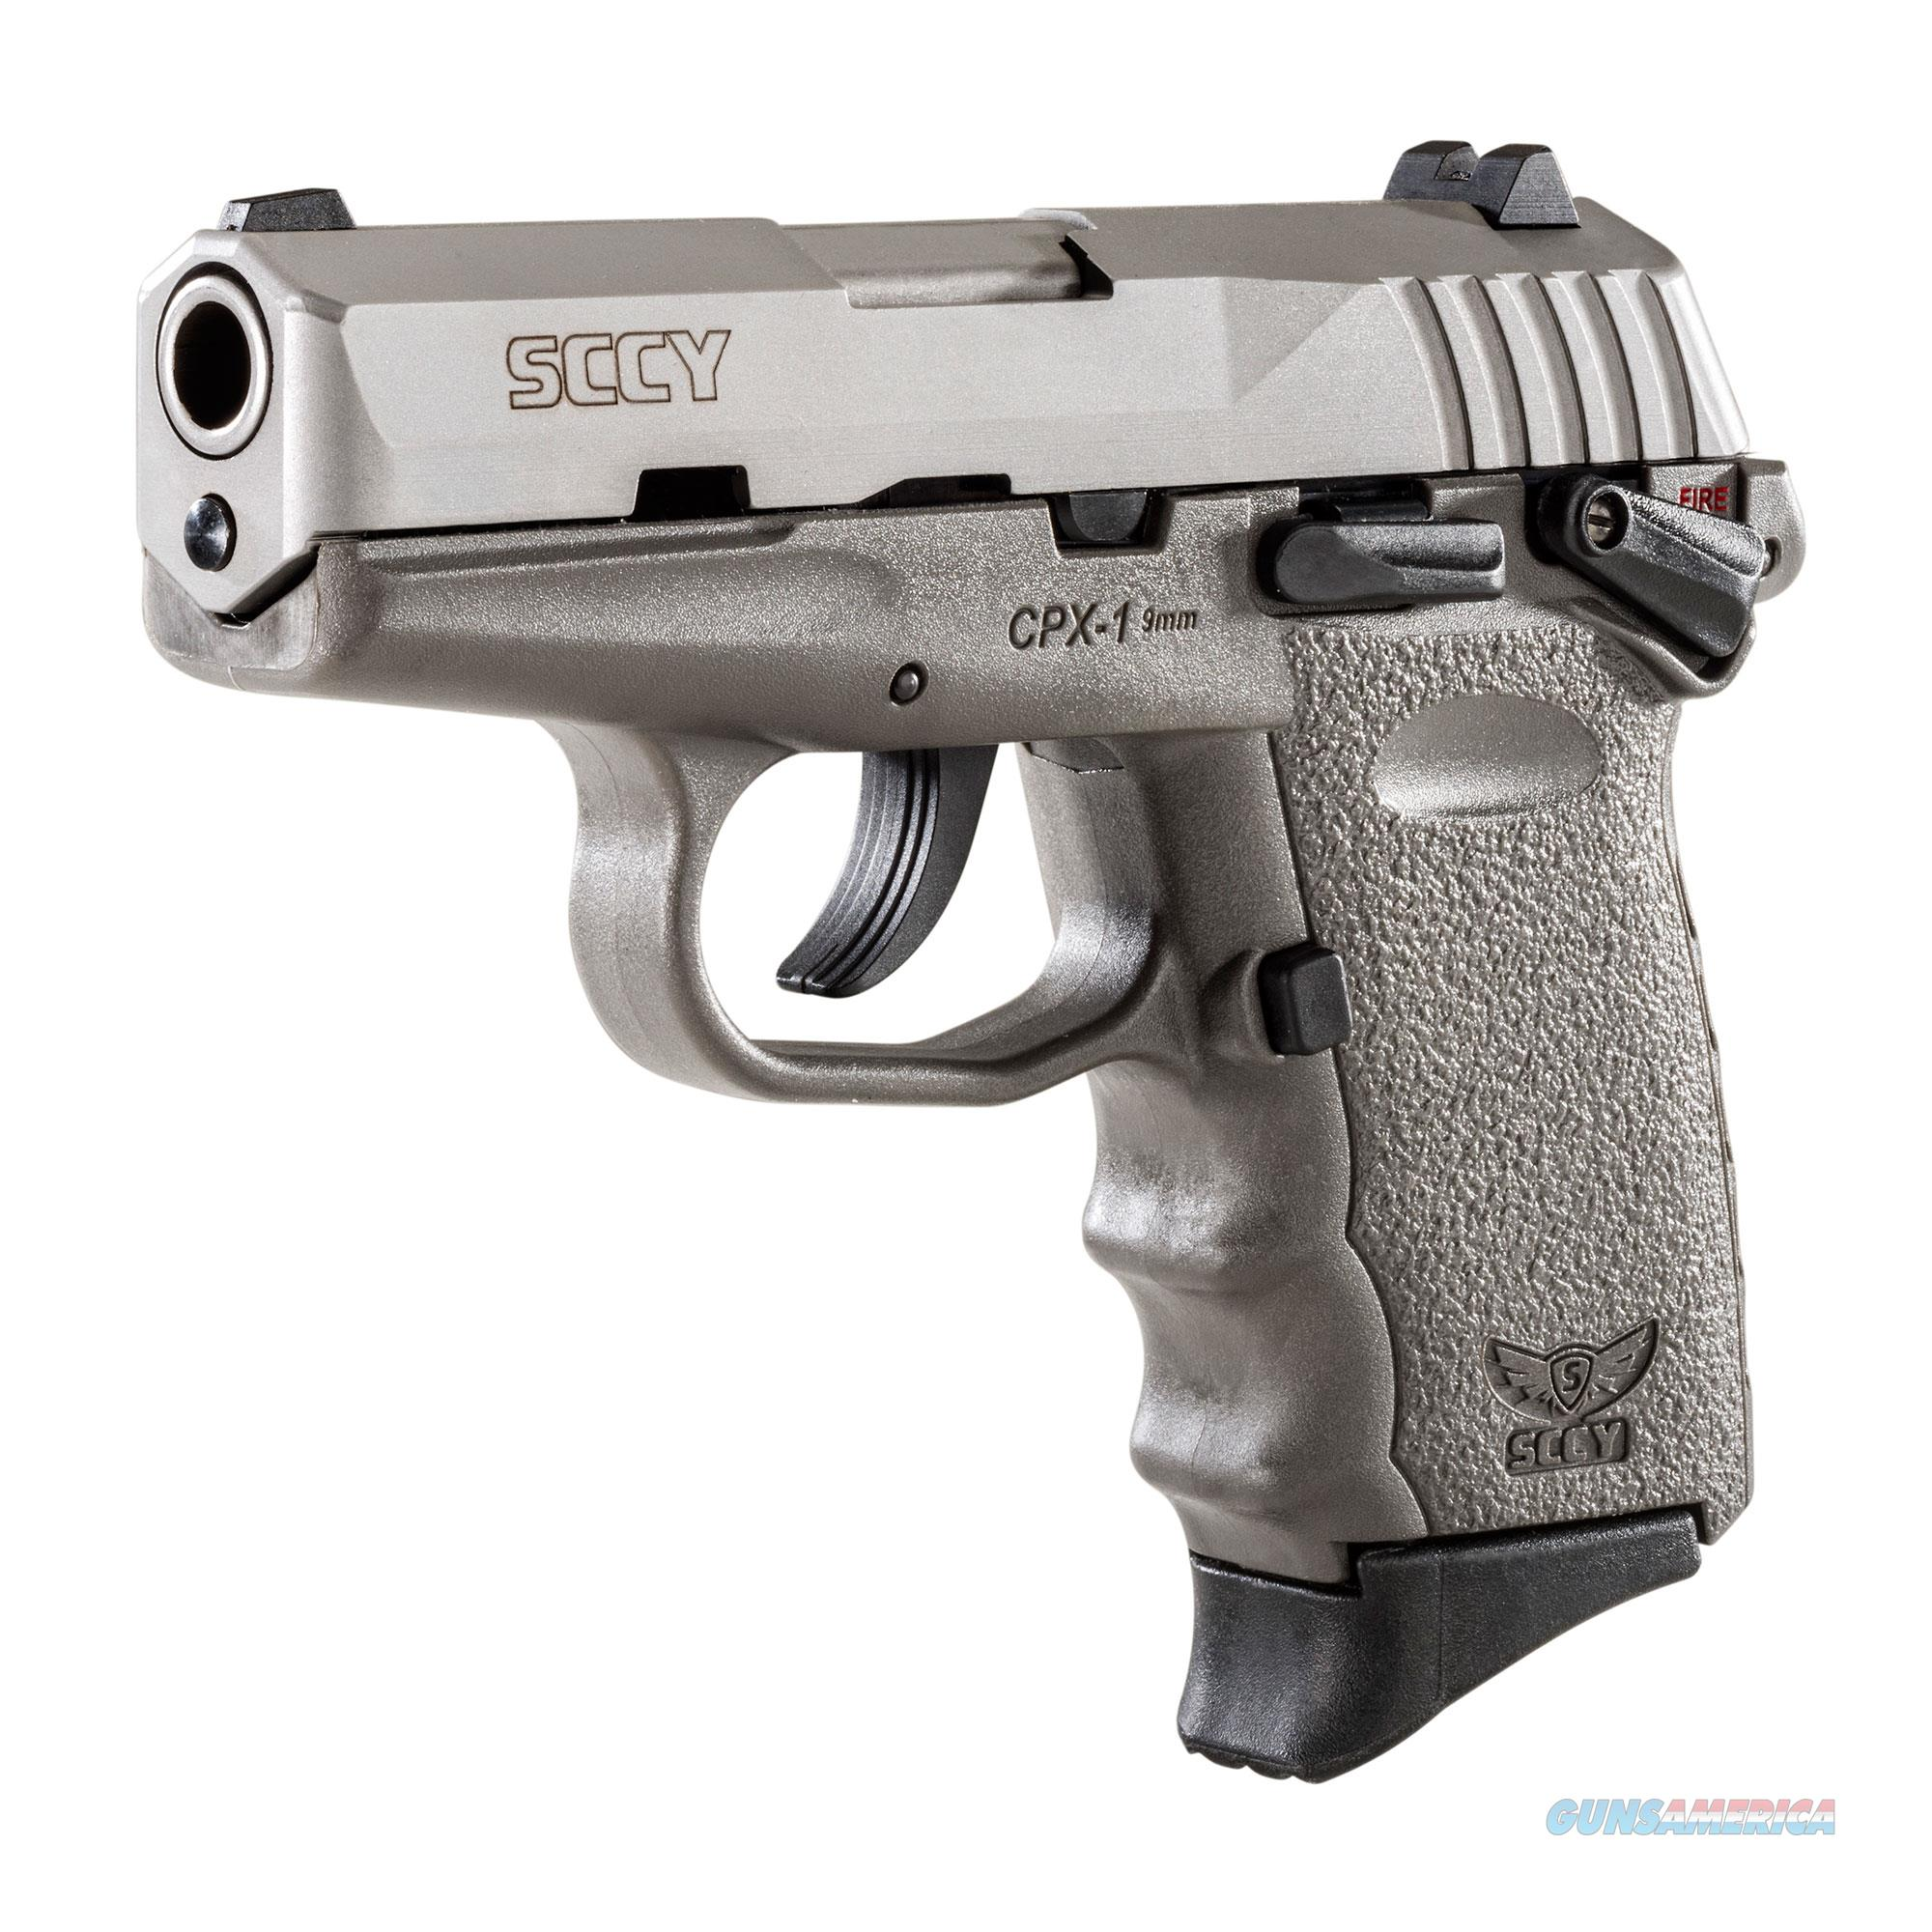 SCCY CPX-1 9mm Auto Pistol with Safety – Stainless/Sniper Gray  Guns > Pistols > SCCY Pistols > CPX1